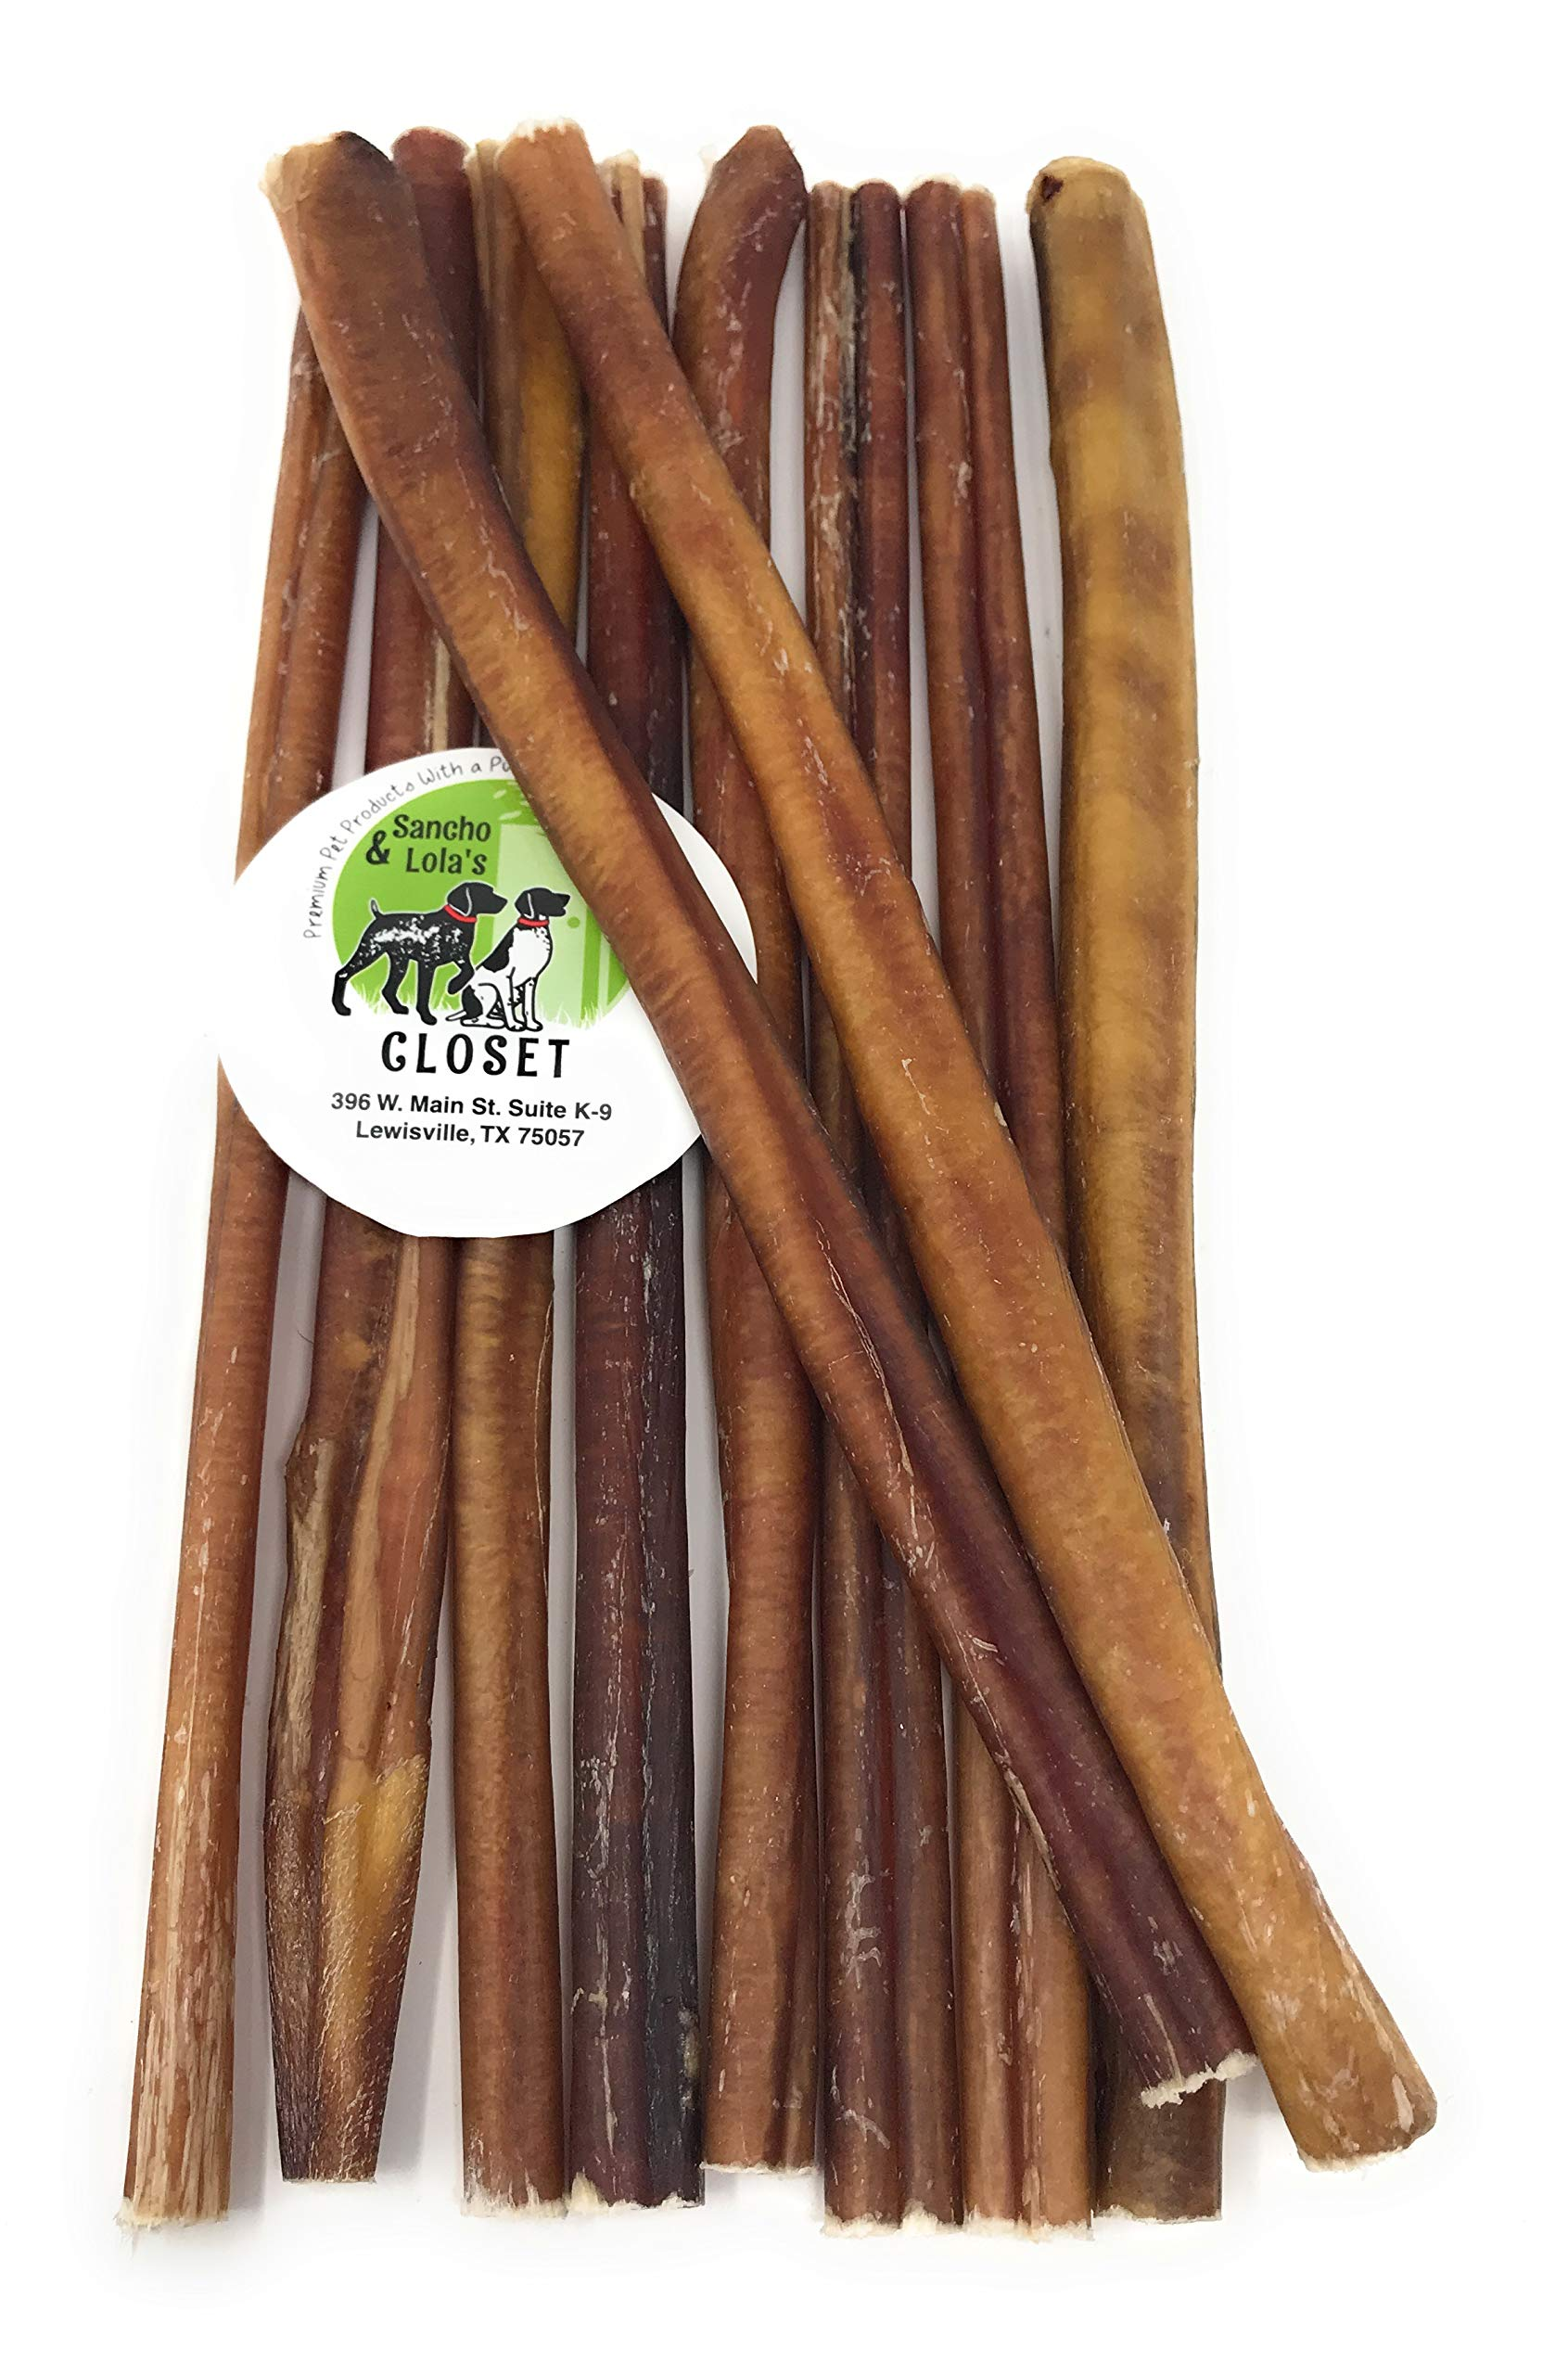 Sancho & Lola's Closet 12-inch Standard Bully Sticks for Dogs Made in USA- 20oz (10-11) Grain-Free All-Natural Dog Beef Pizzle Chews by Sancho & Lola's Closet